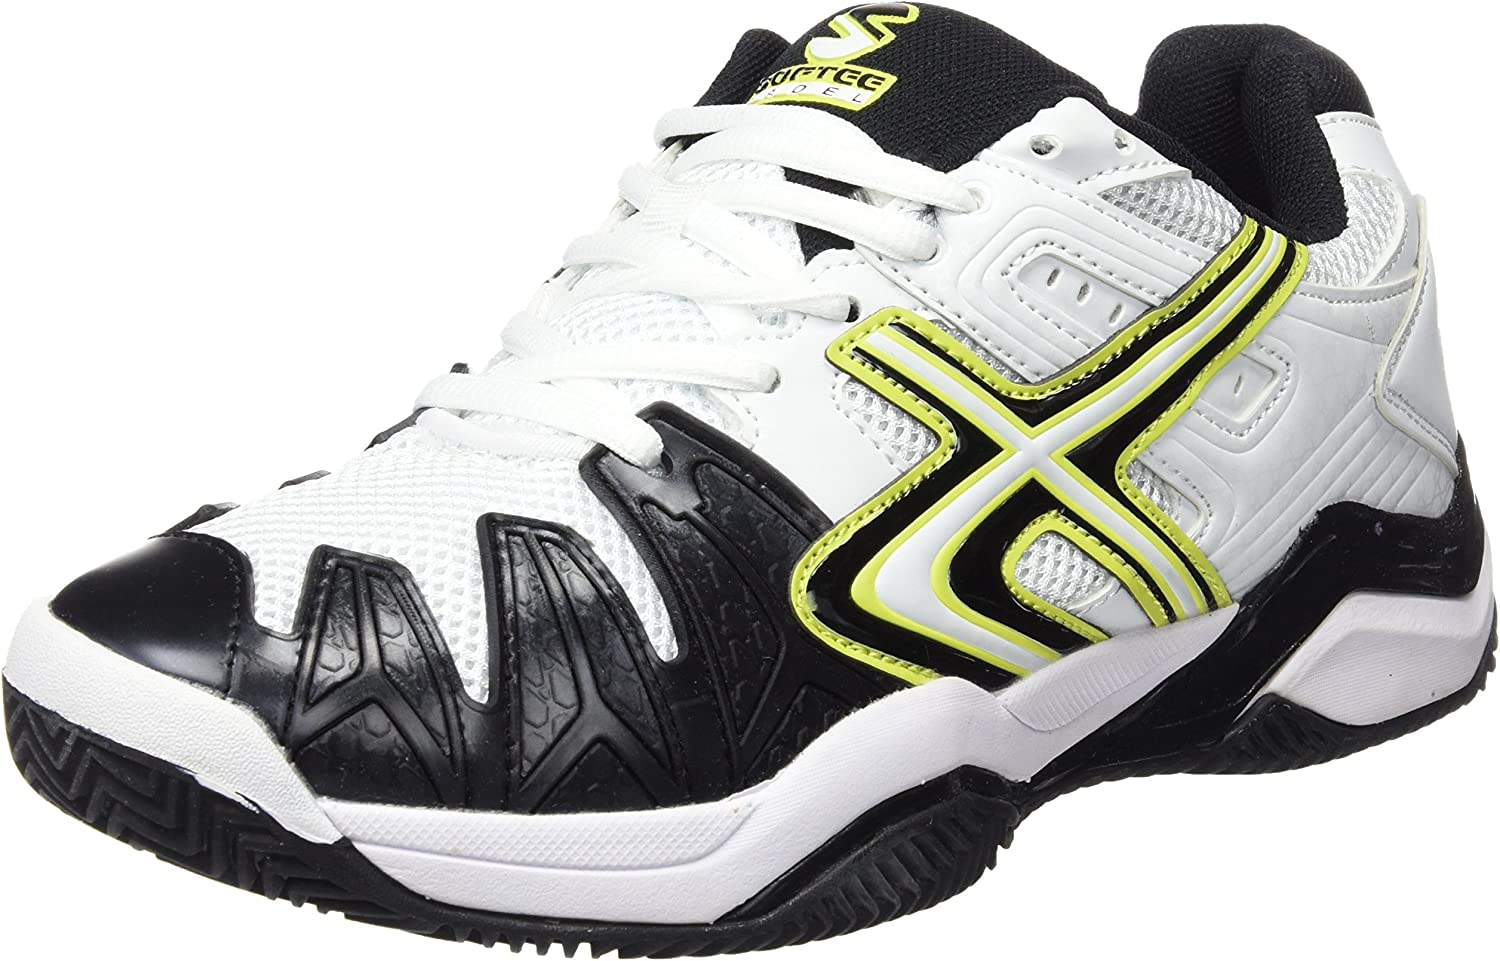 Amazon.com: Softee – Padel Shoe Winner 1.0 White/Black Size ...